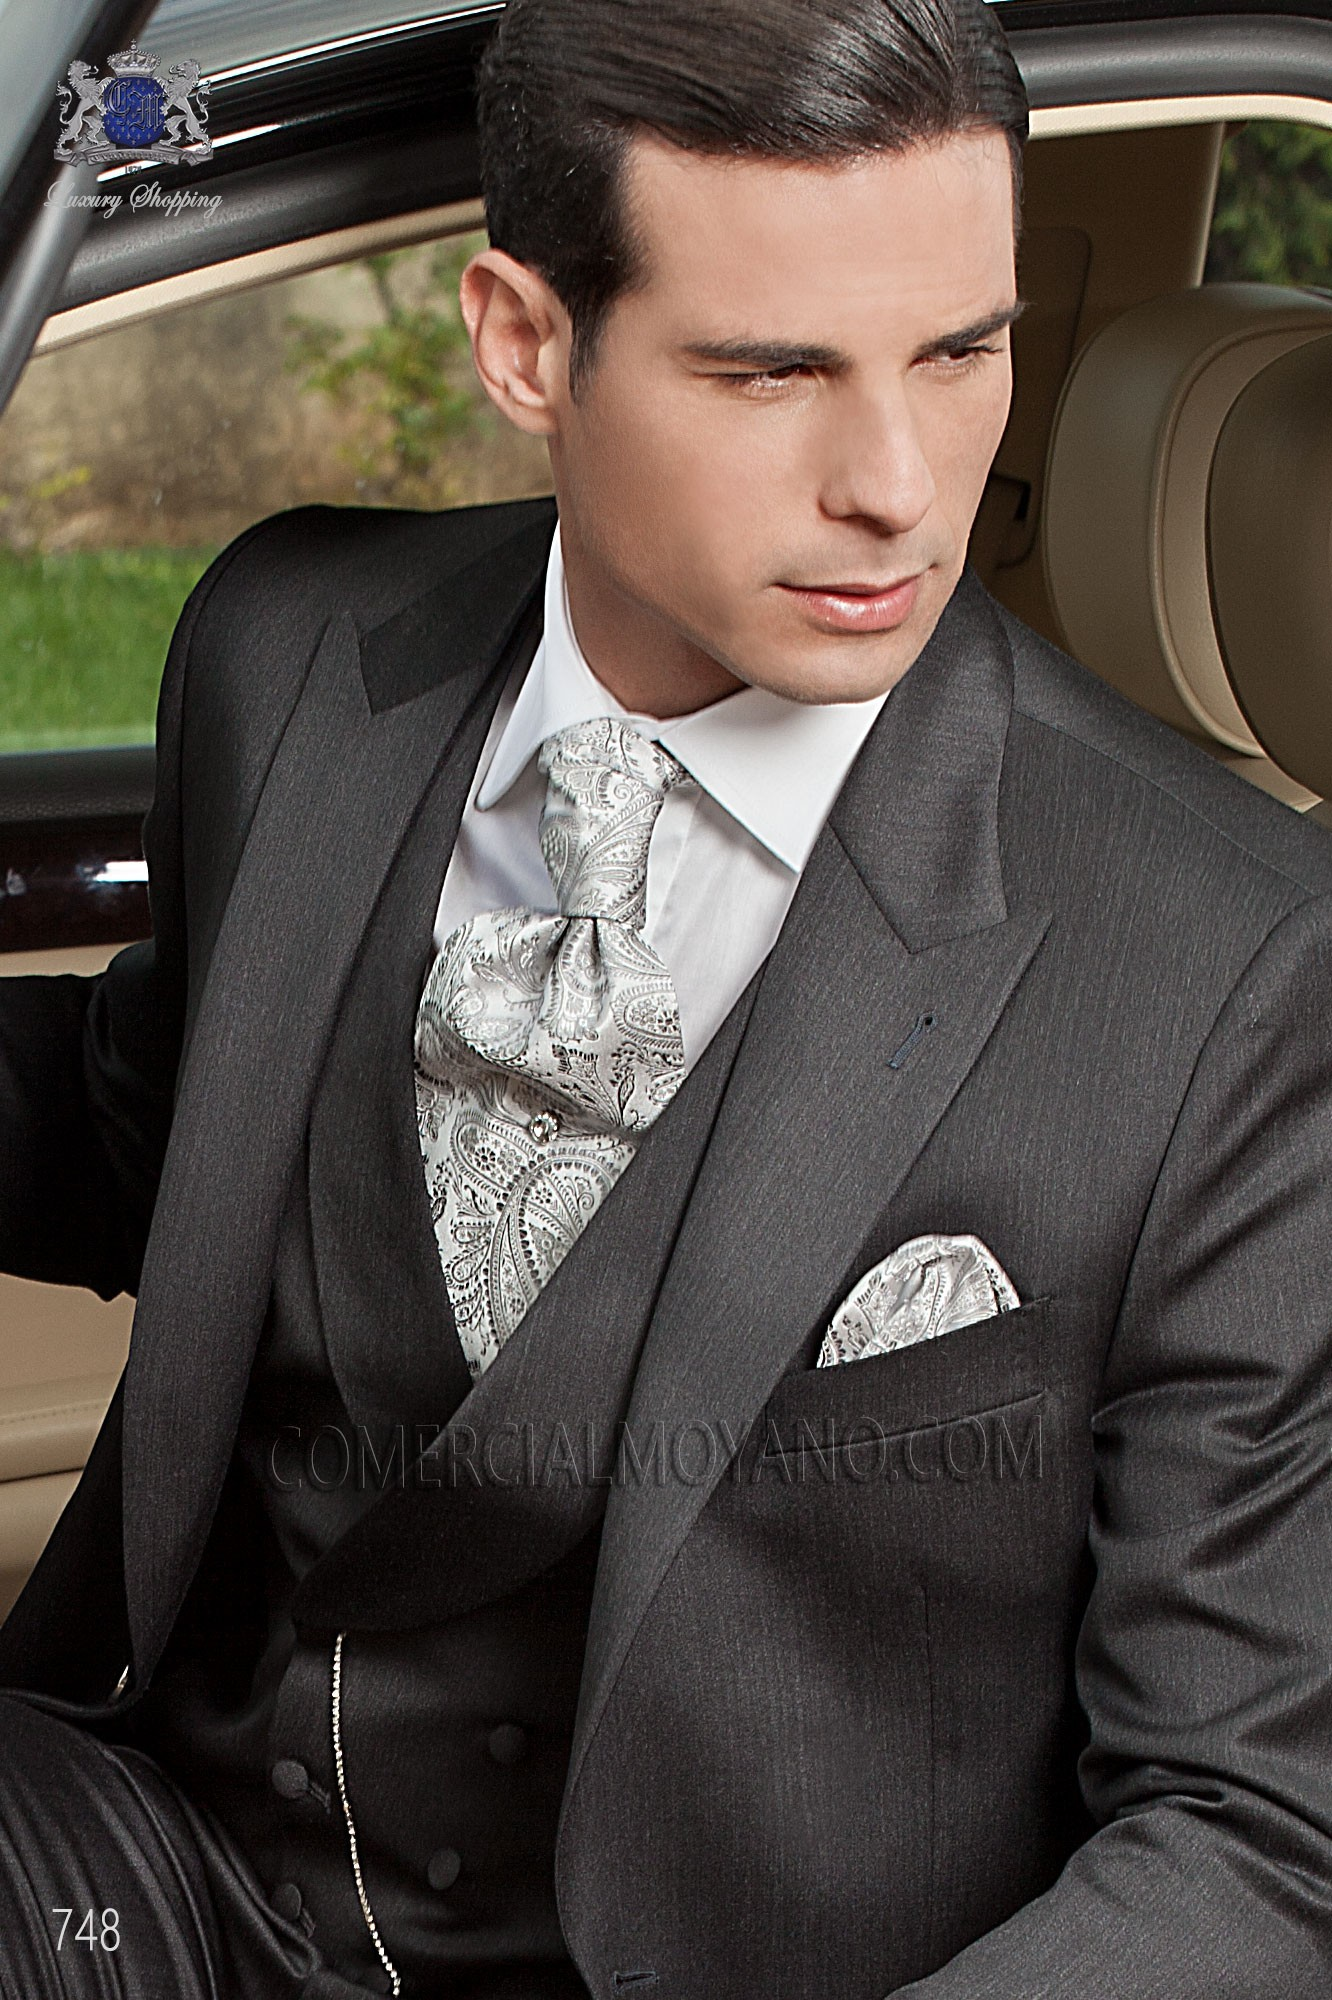 Italian fashion black men wedding suit, model: 748 Ottavio Nuccio Gala Fashion Collection